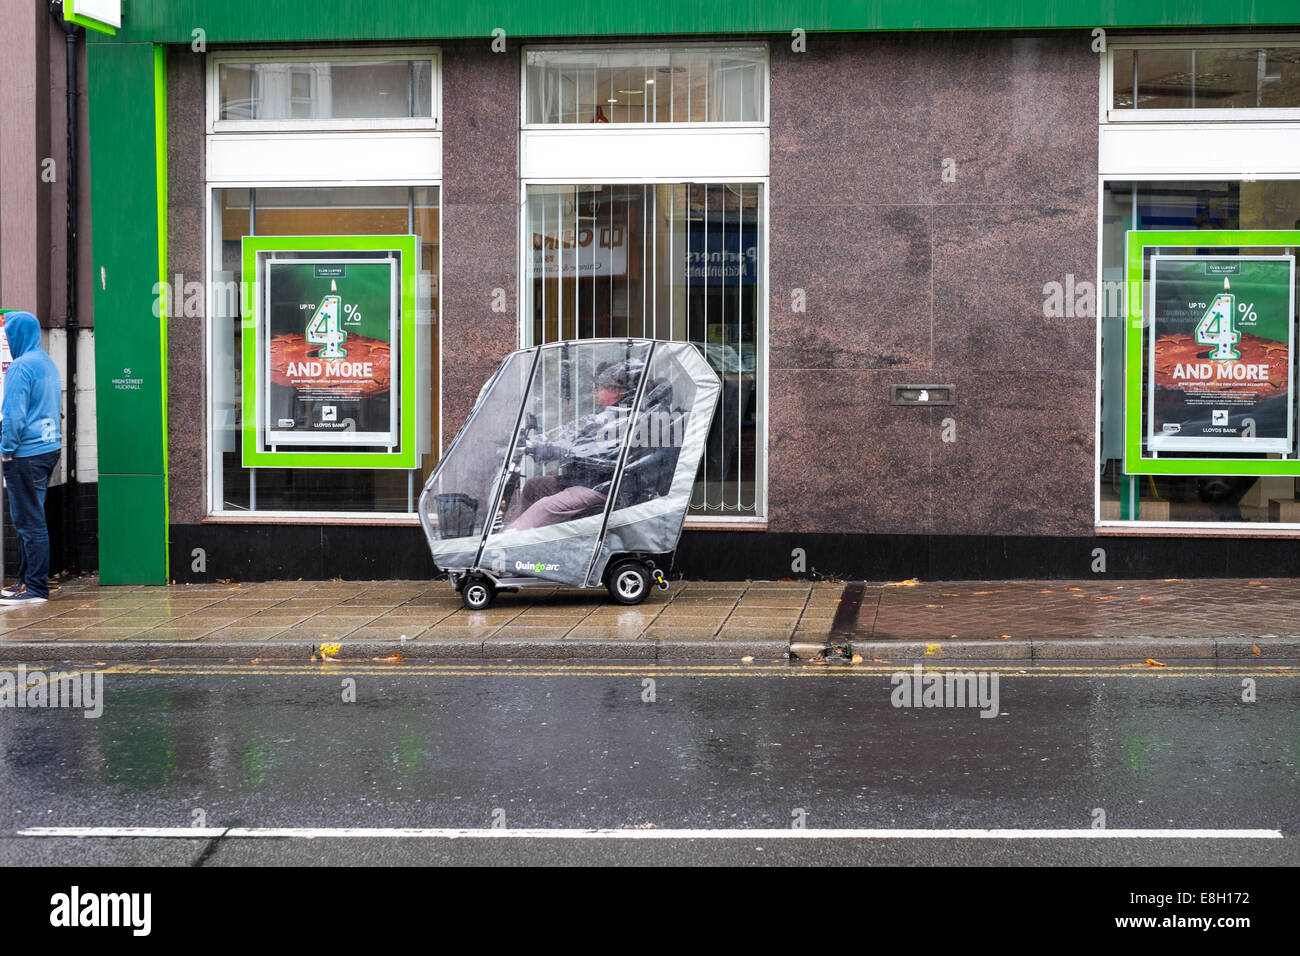 Hucknall, Nottinghamshire, UK. 08th October 2014. UK weather. This week Autumn has arrived with heavy rain and low - Stock Image